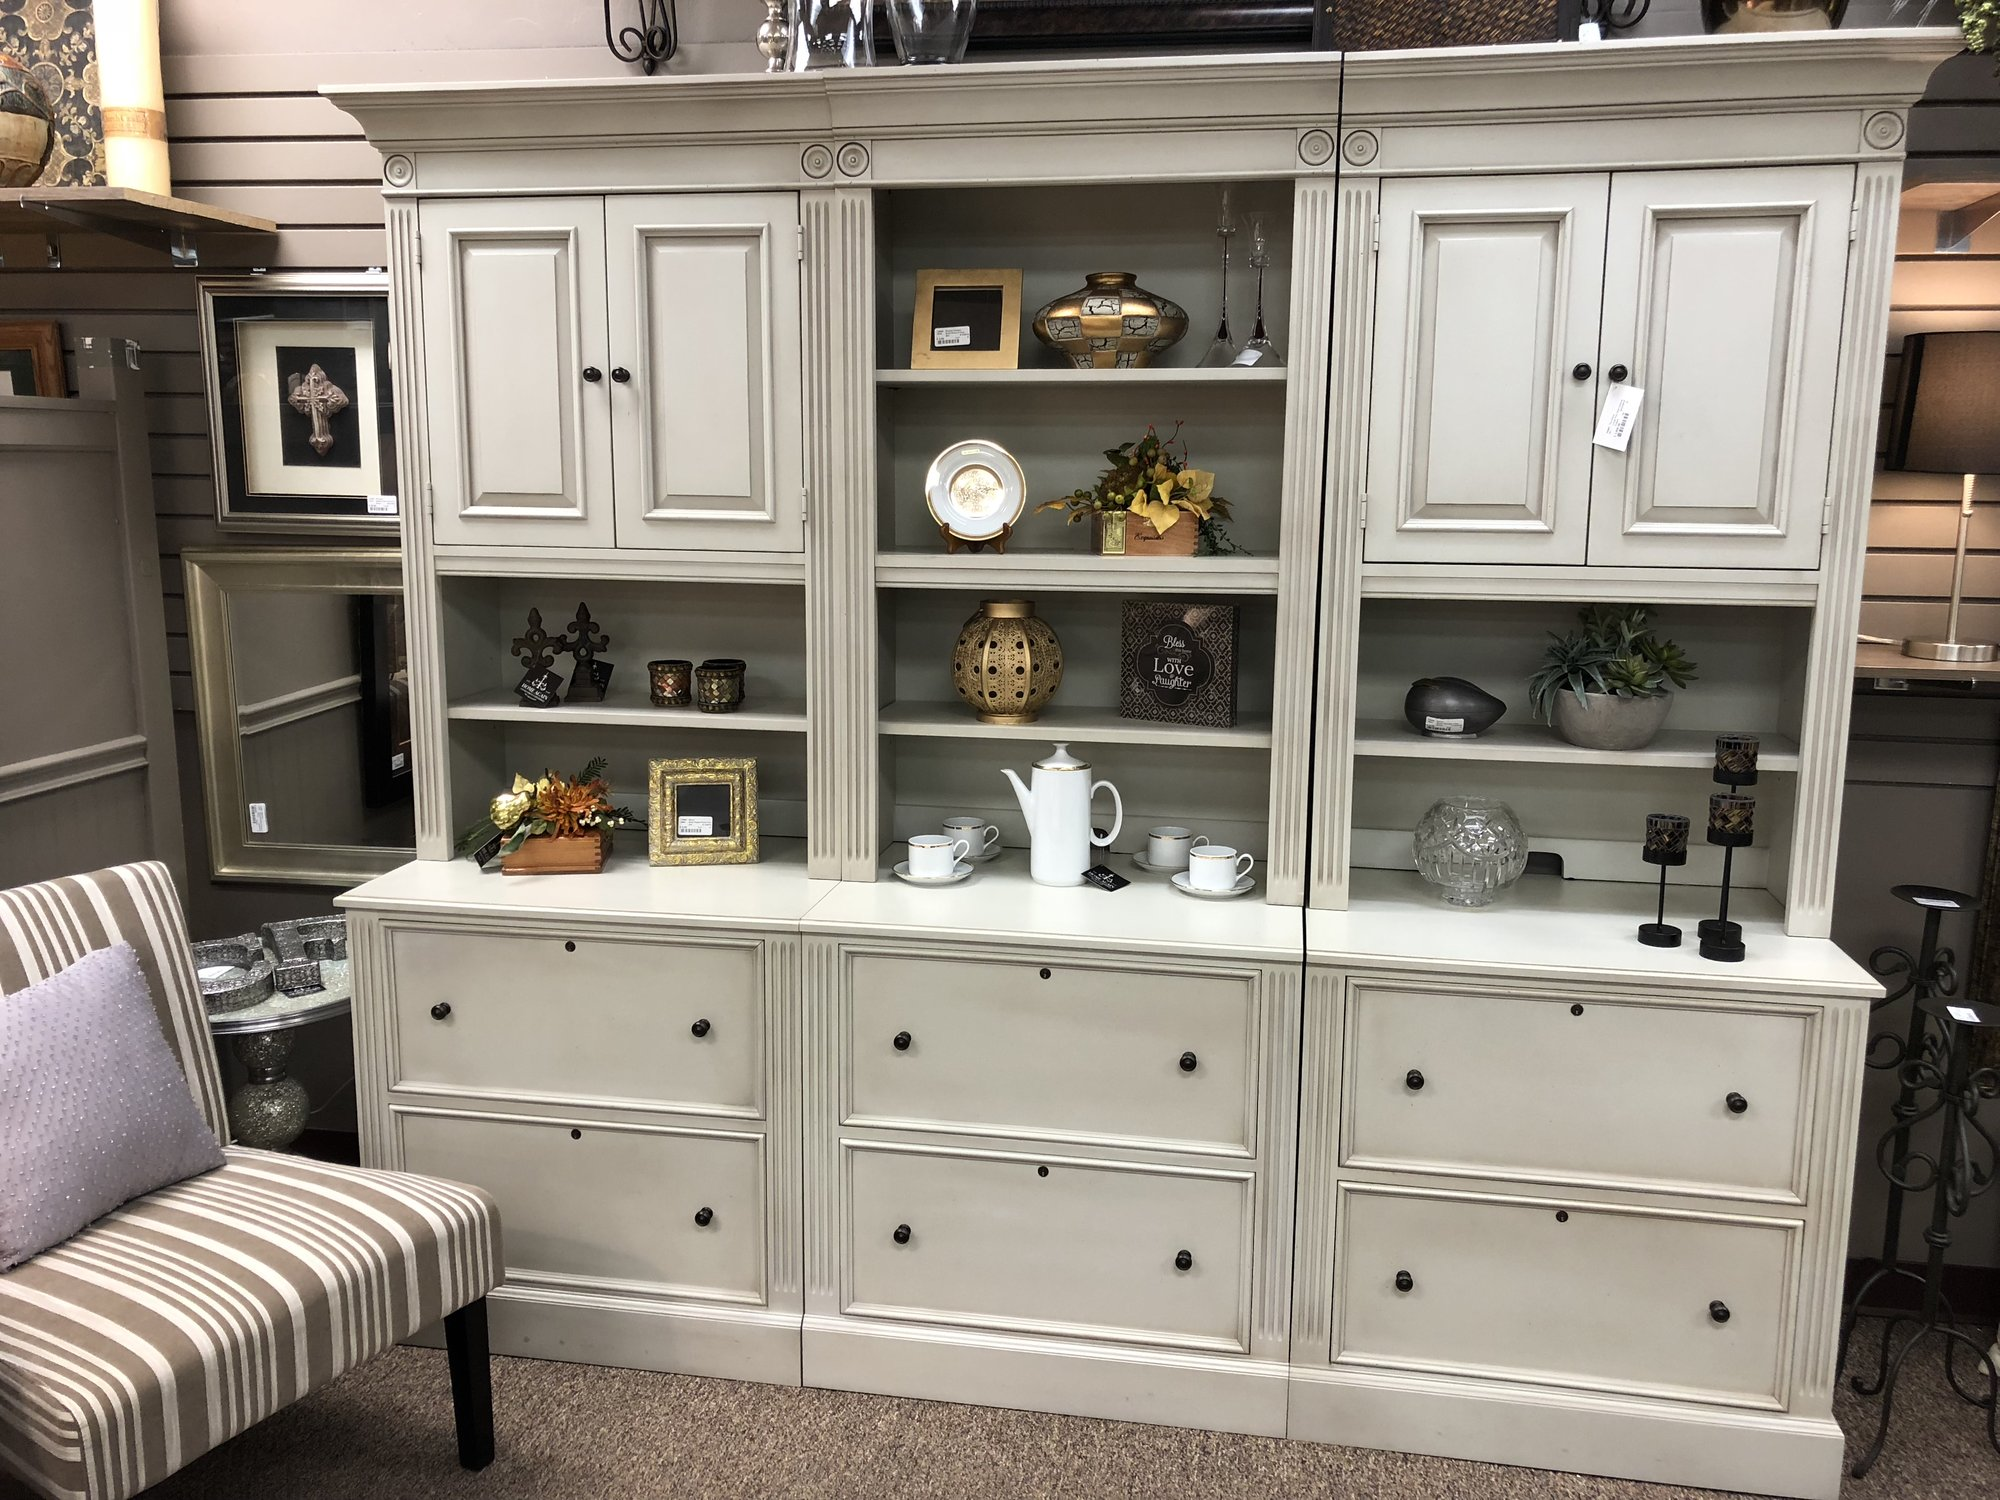 Amazing large full wall cabinet that would be great for a familiy room, den or office!